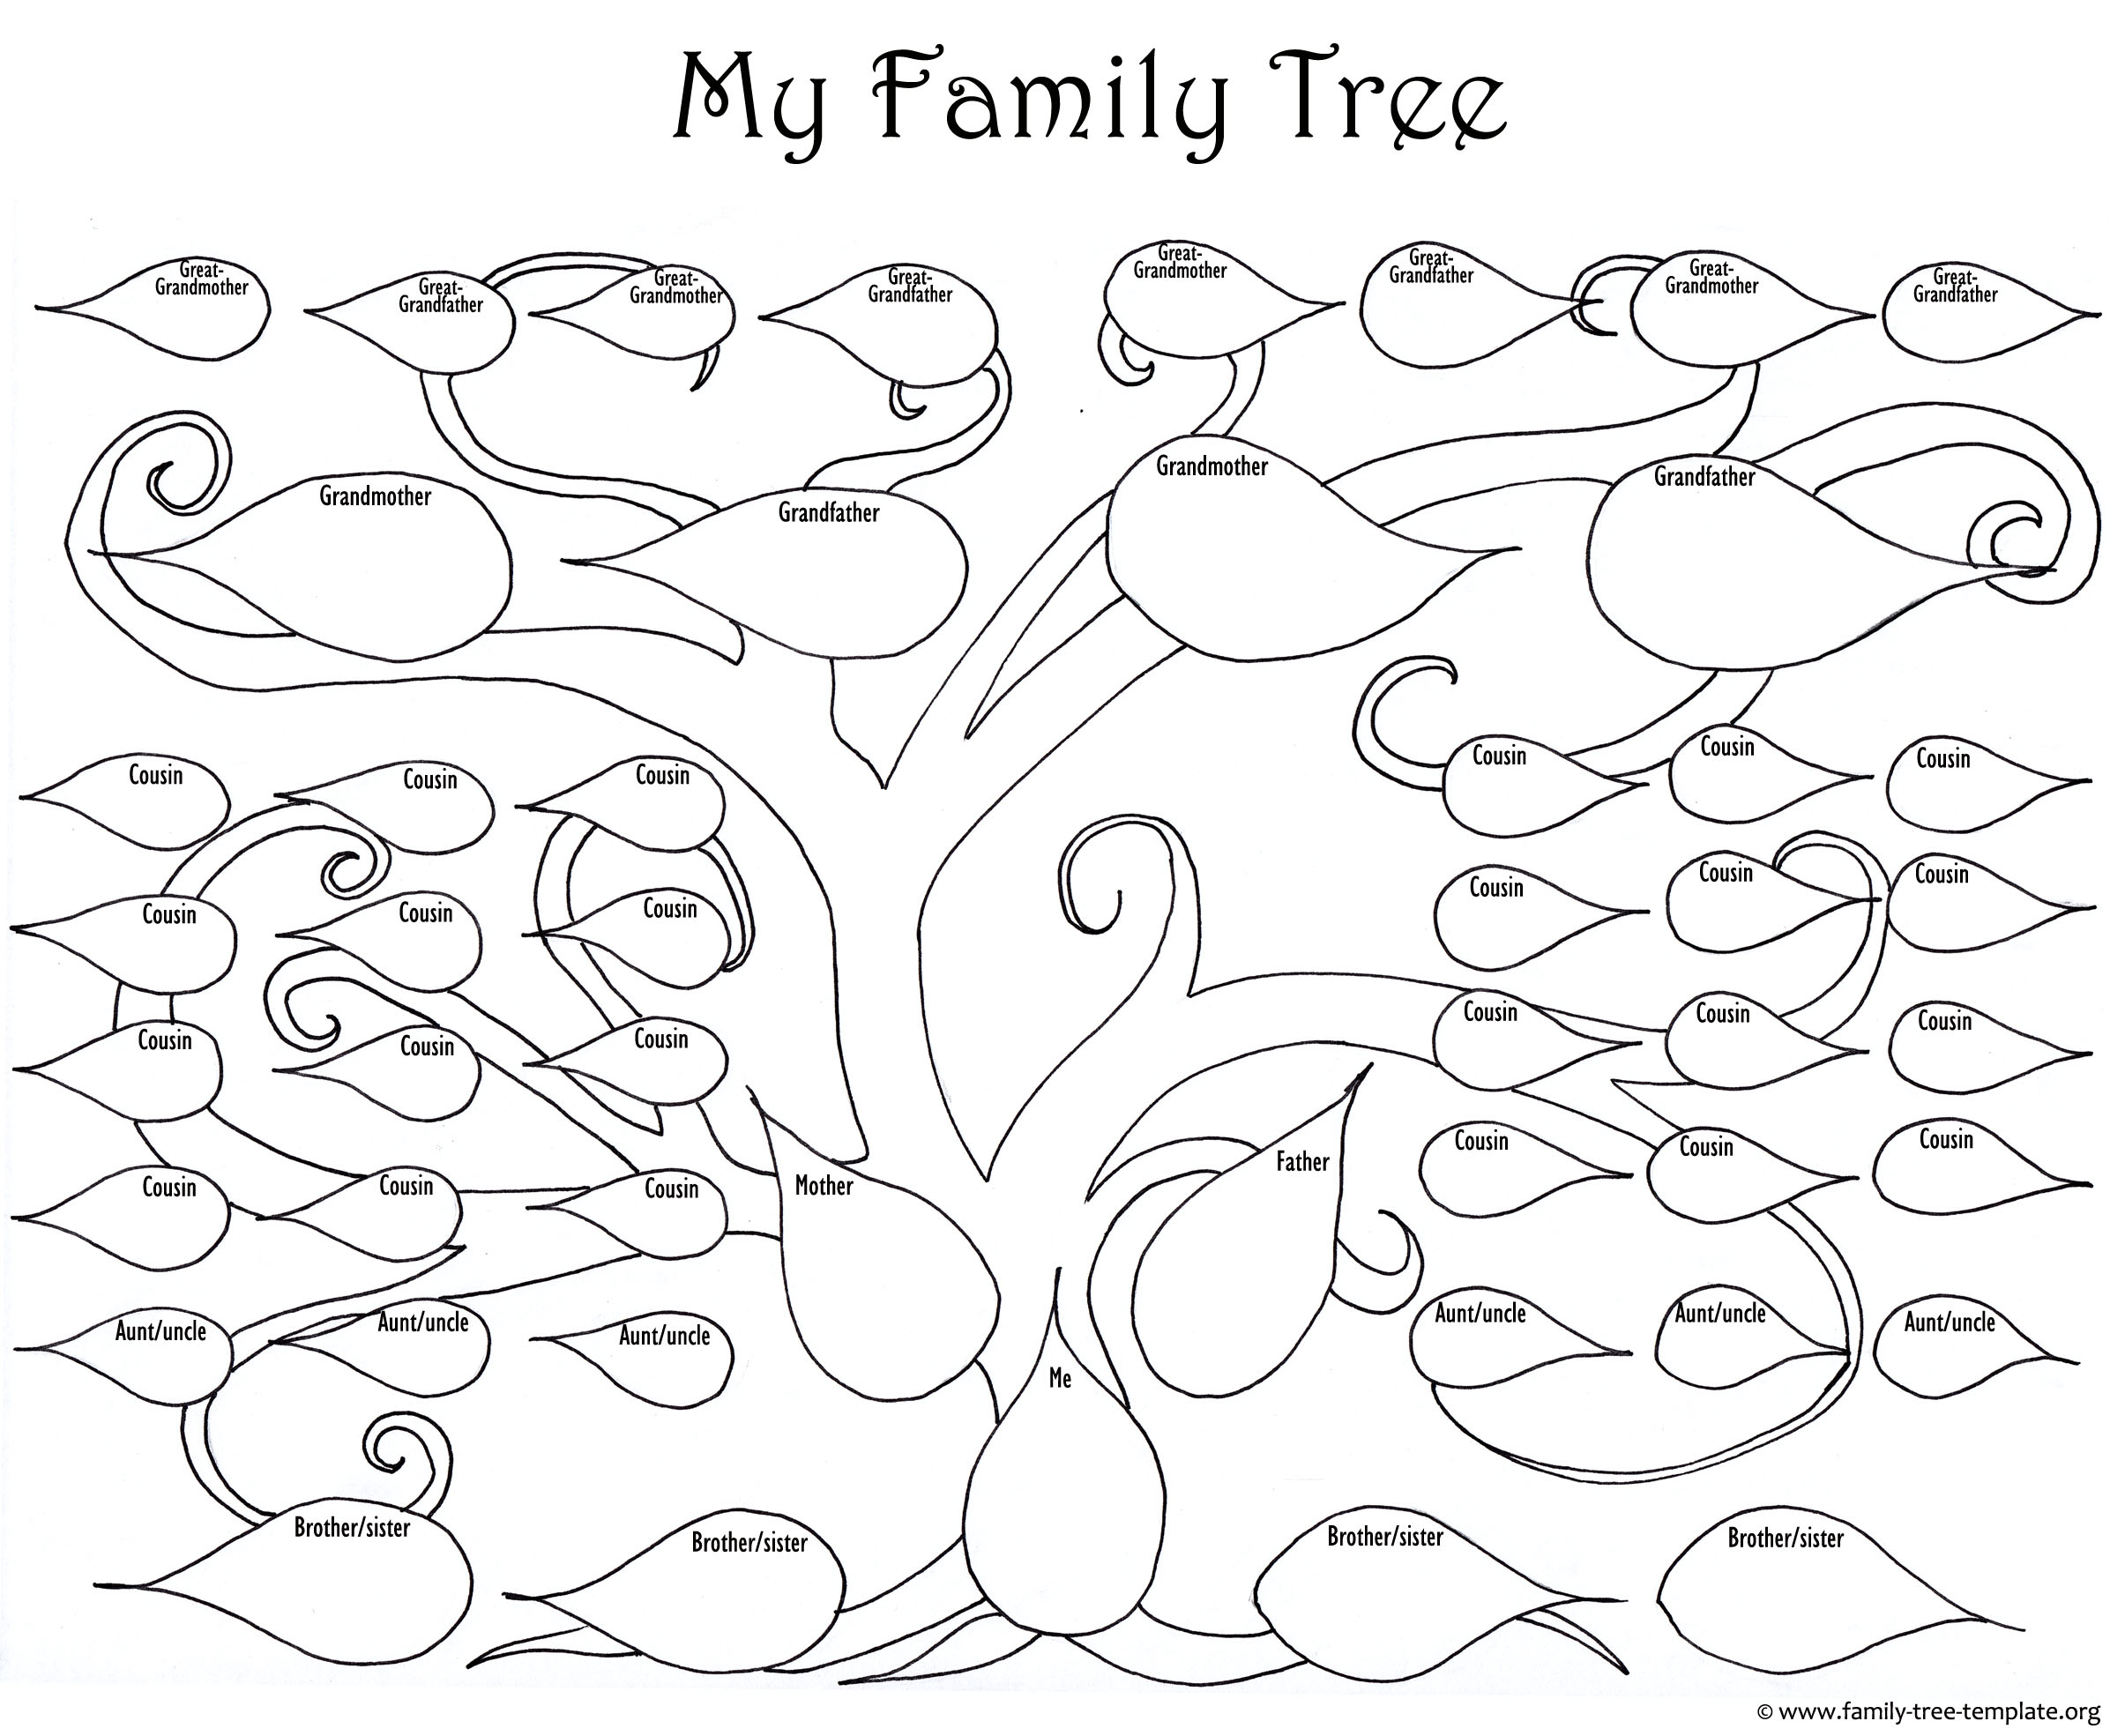 family tree diagram template nissan pulsar wiring a printable blank to make your kids genealogy